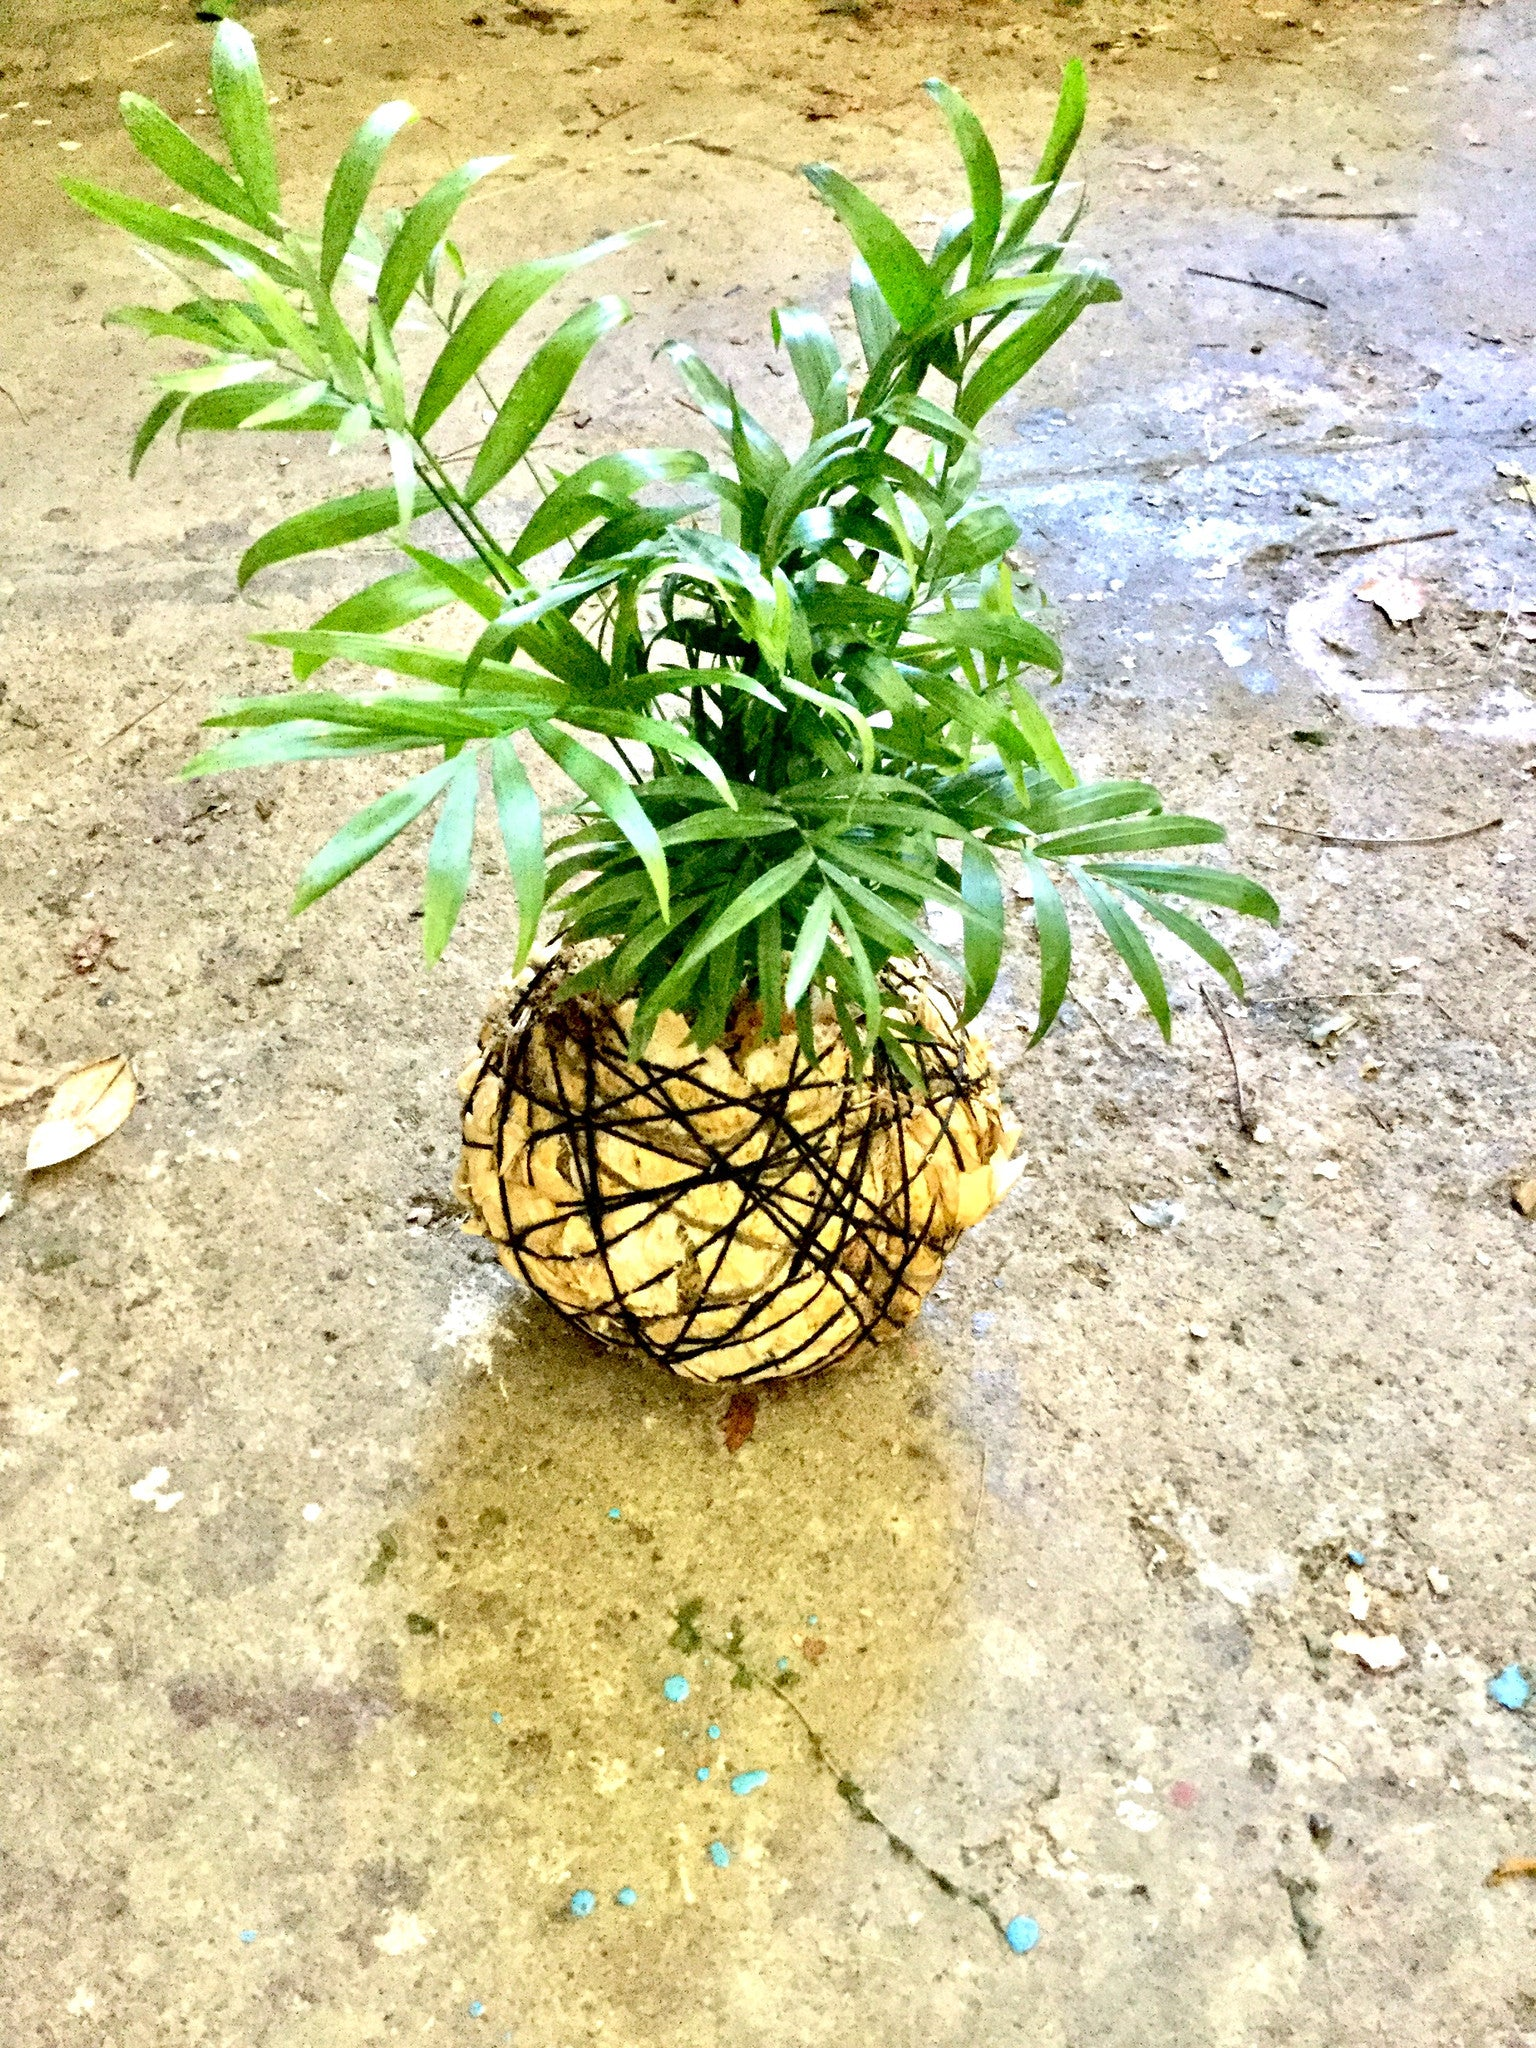 Kokedama Making - May 12